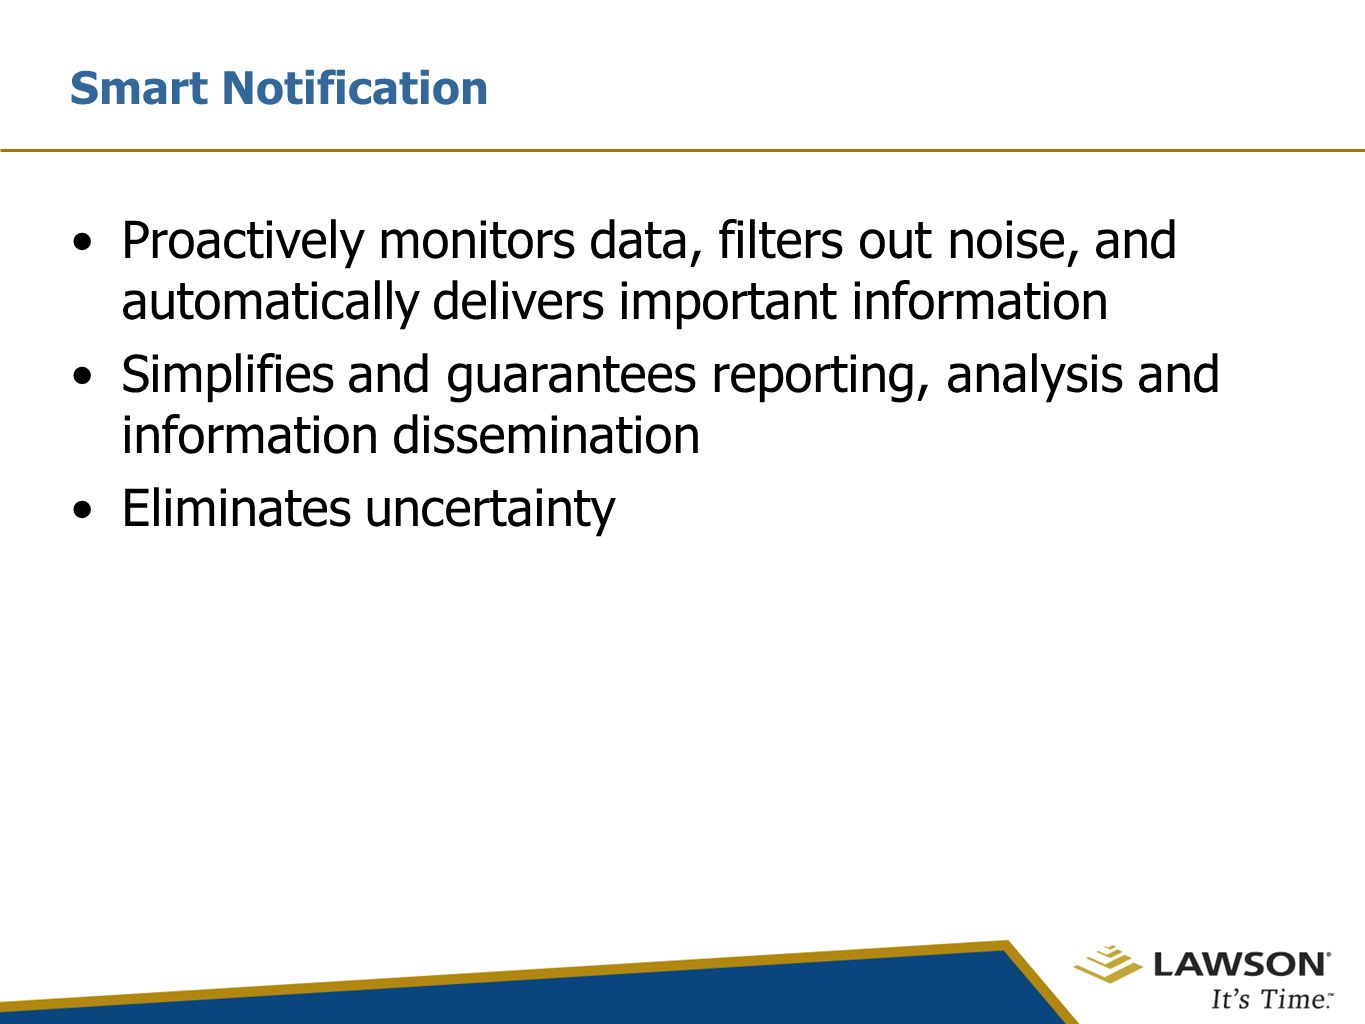 Proactively monitors data, filters out noise, and automatically delivers important information Simplifies and guarantees reporting, analysis and information dissemination Eliminates uncertainty